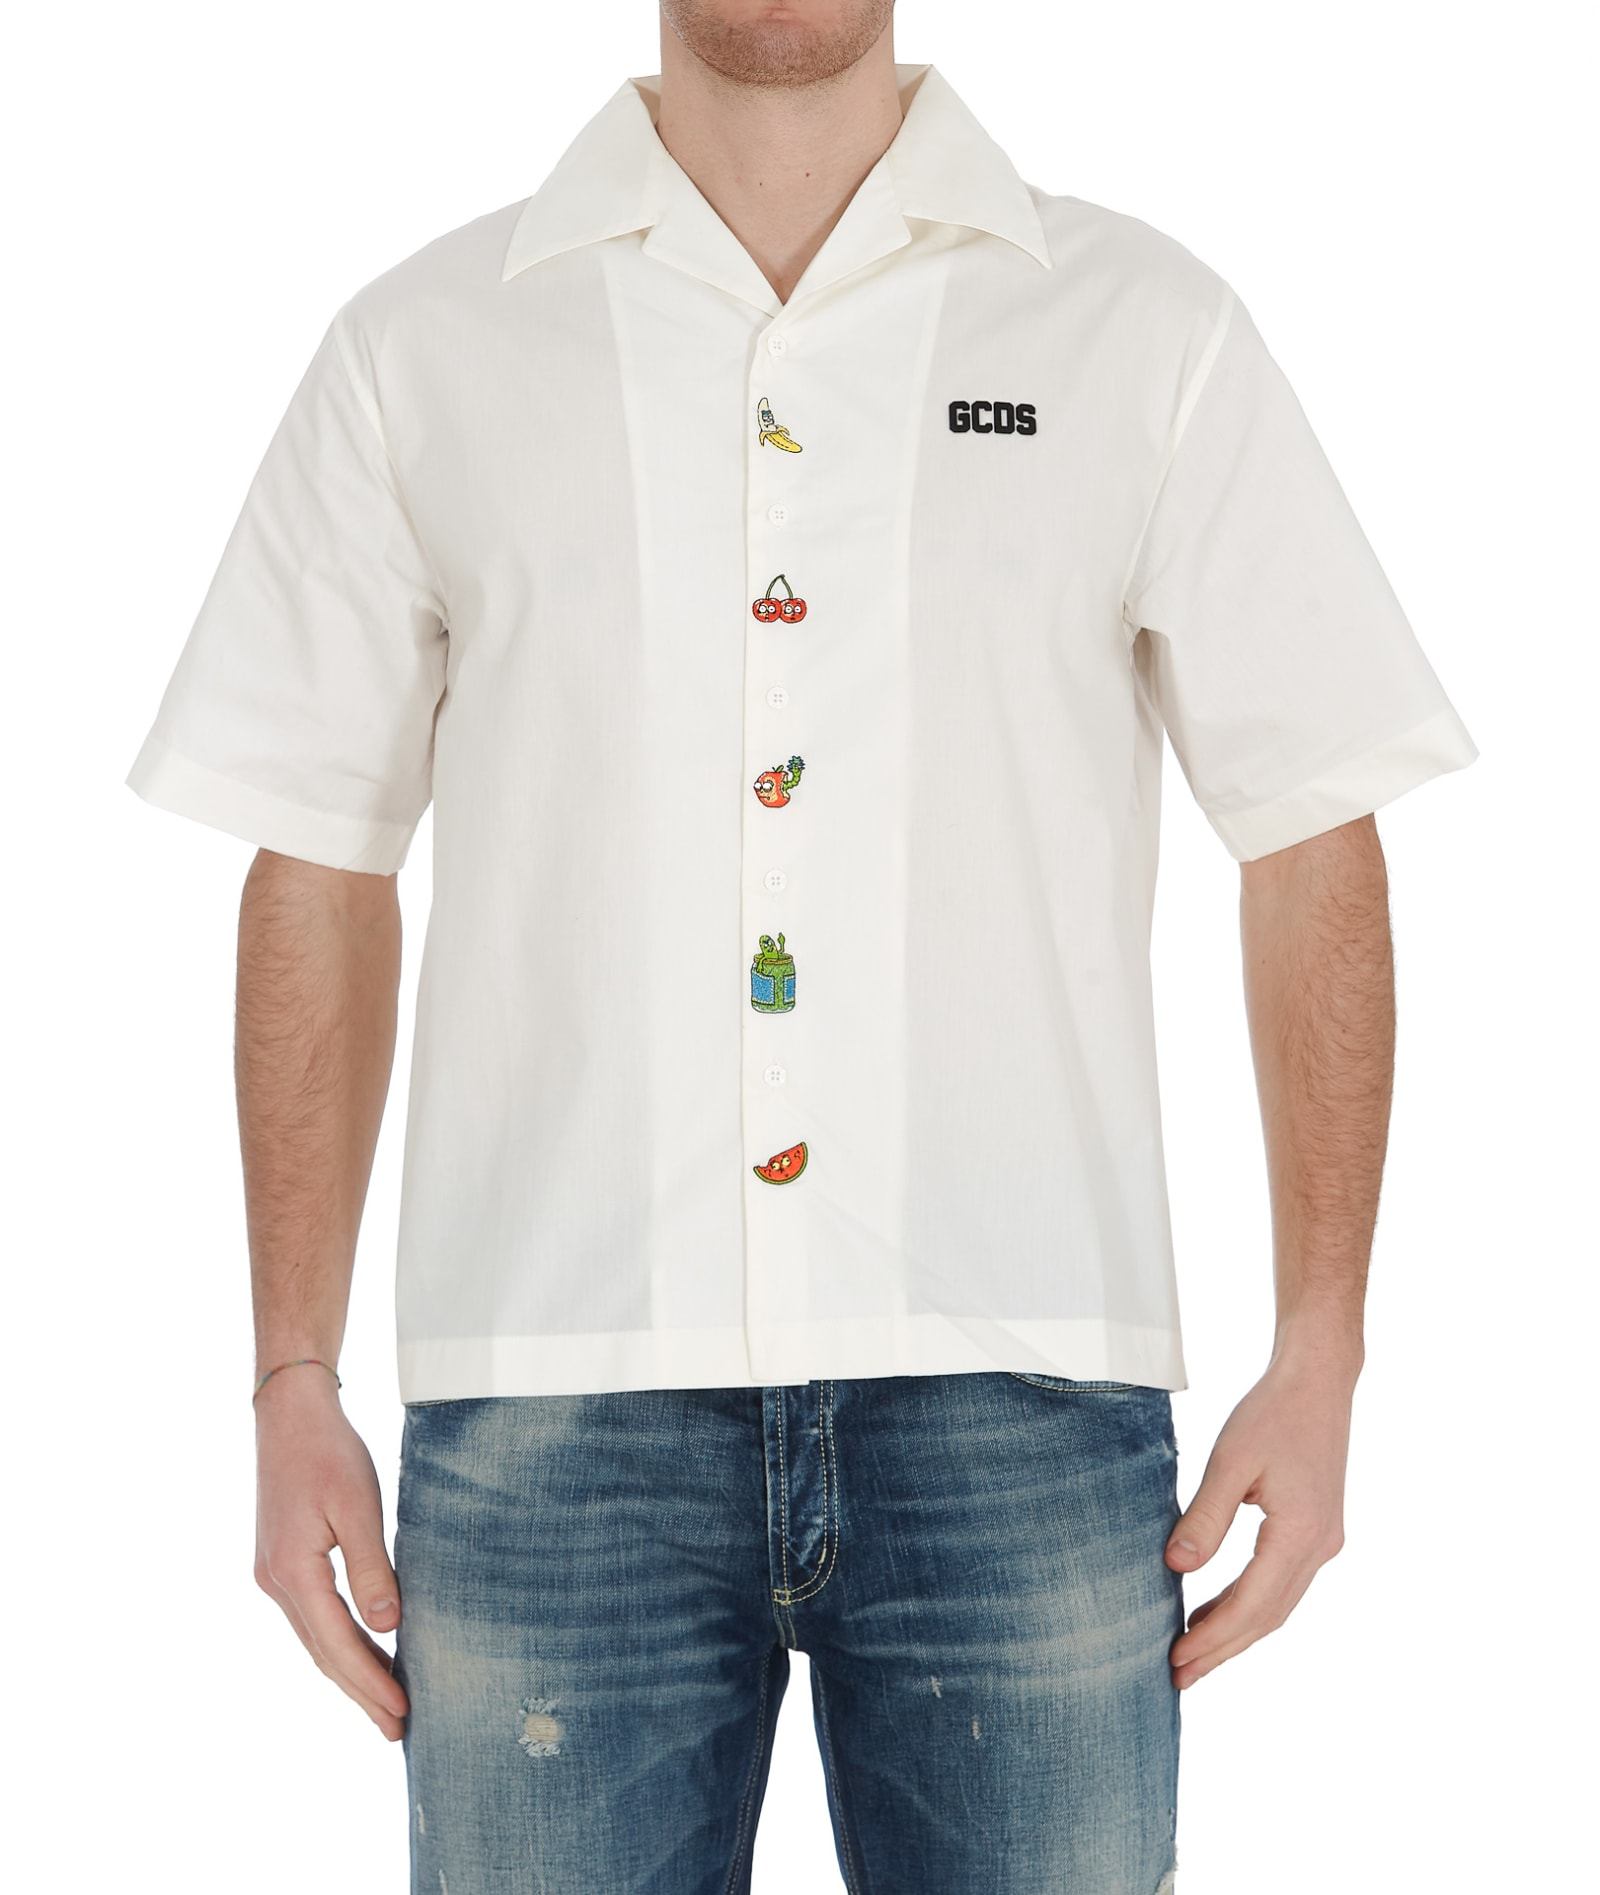 Gcds Cottons GCDS RICK & MORTY BOWLING SHIRT